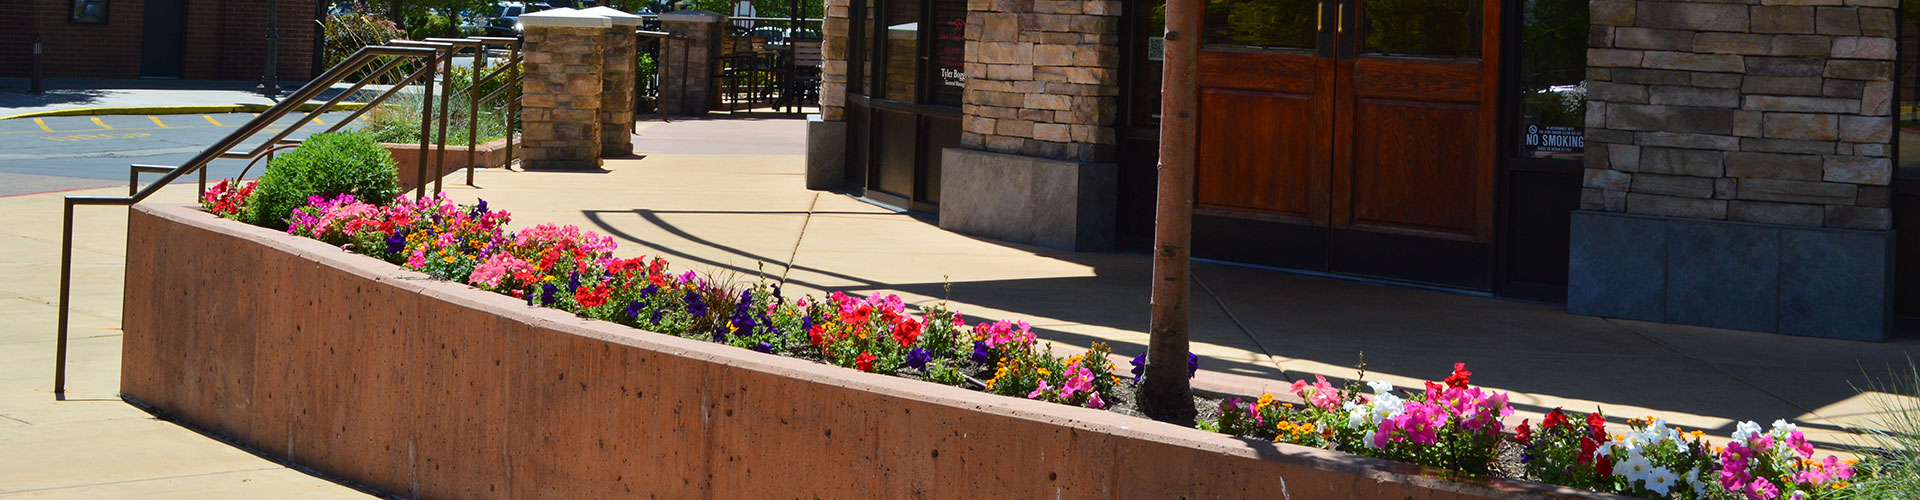 A commercial property in Draper where we recently installed landscaping.